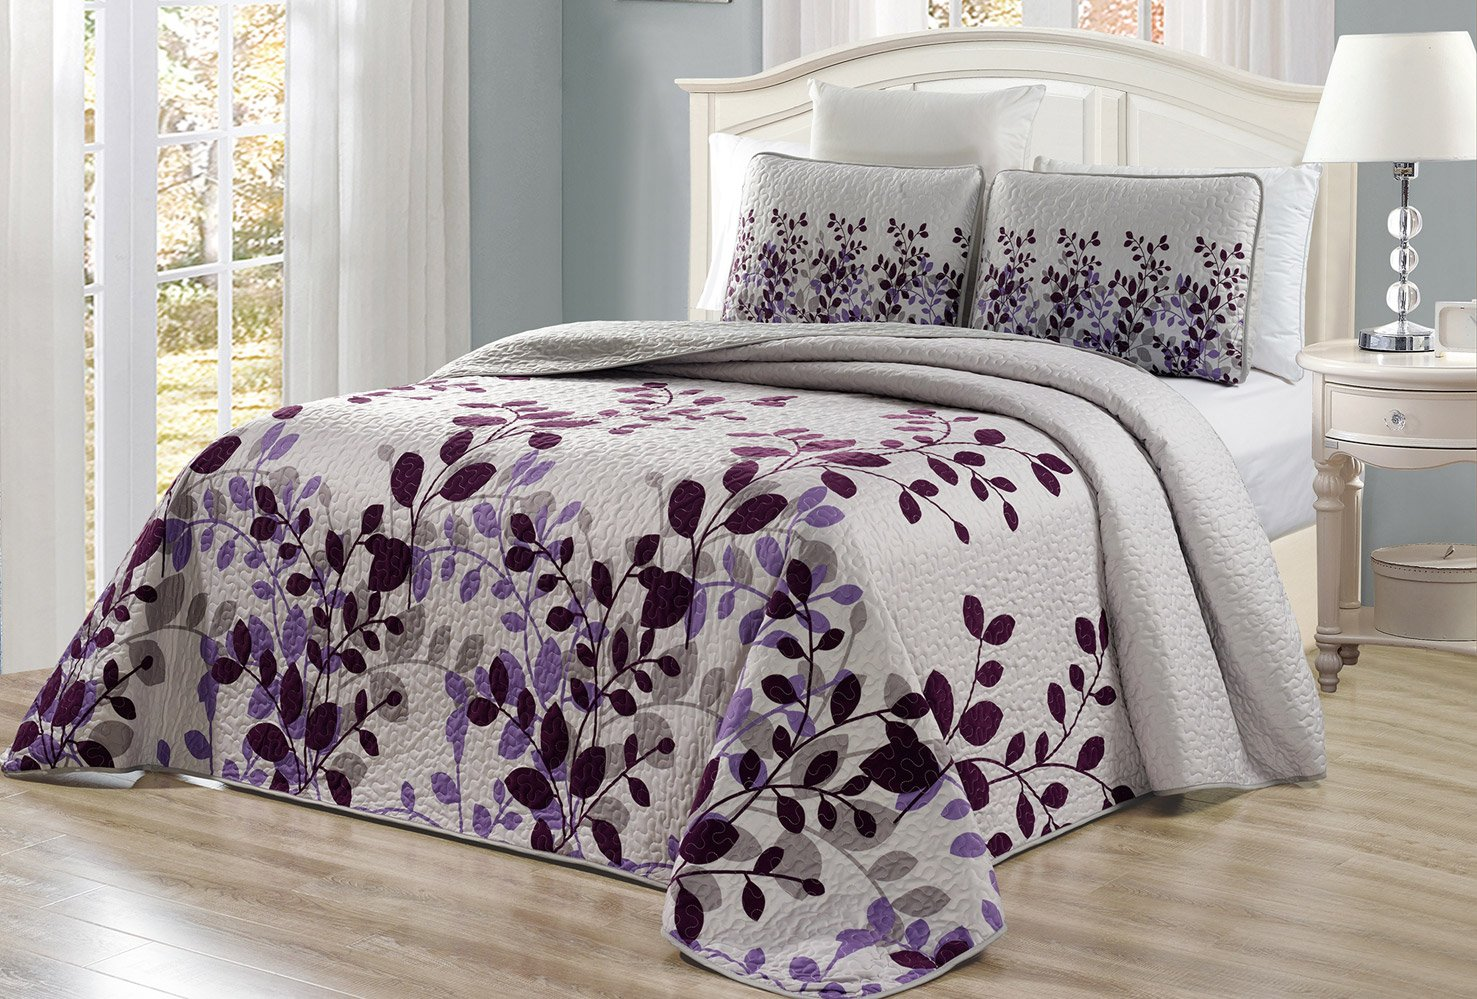 "3-Piece Fine printed Oversize (100"" X 95"") Fresca Quilt Set Reversible Bedspread Coverlet FULL / QUEEN SIZE Bed Cover (Purple, Grey, Viney)"